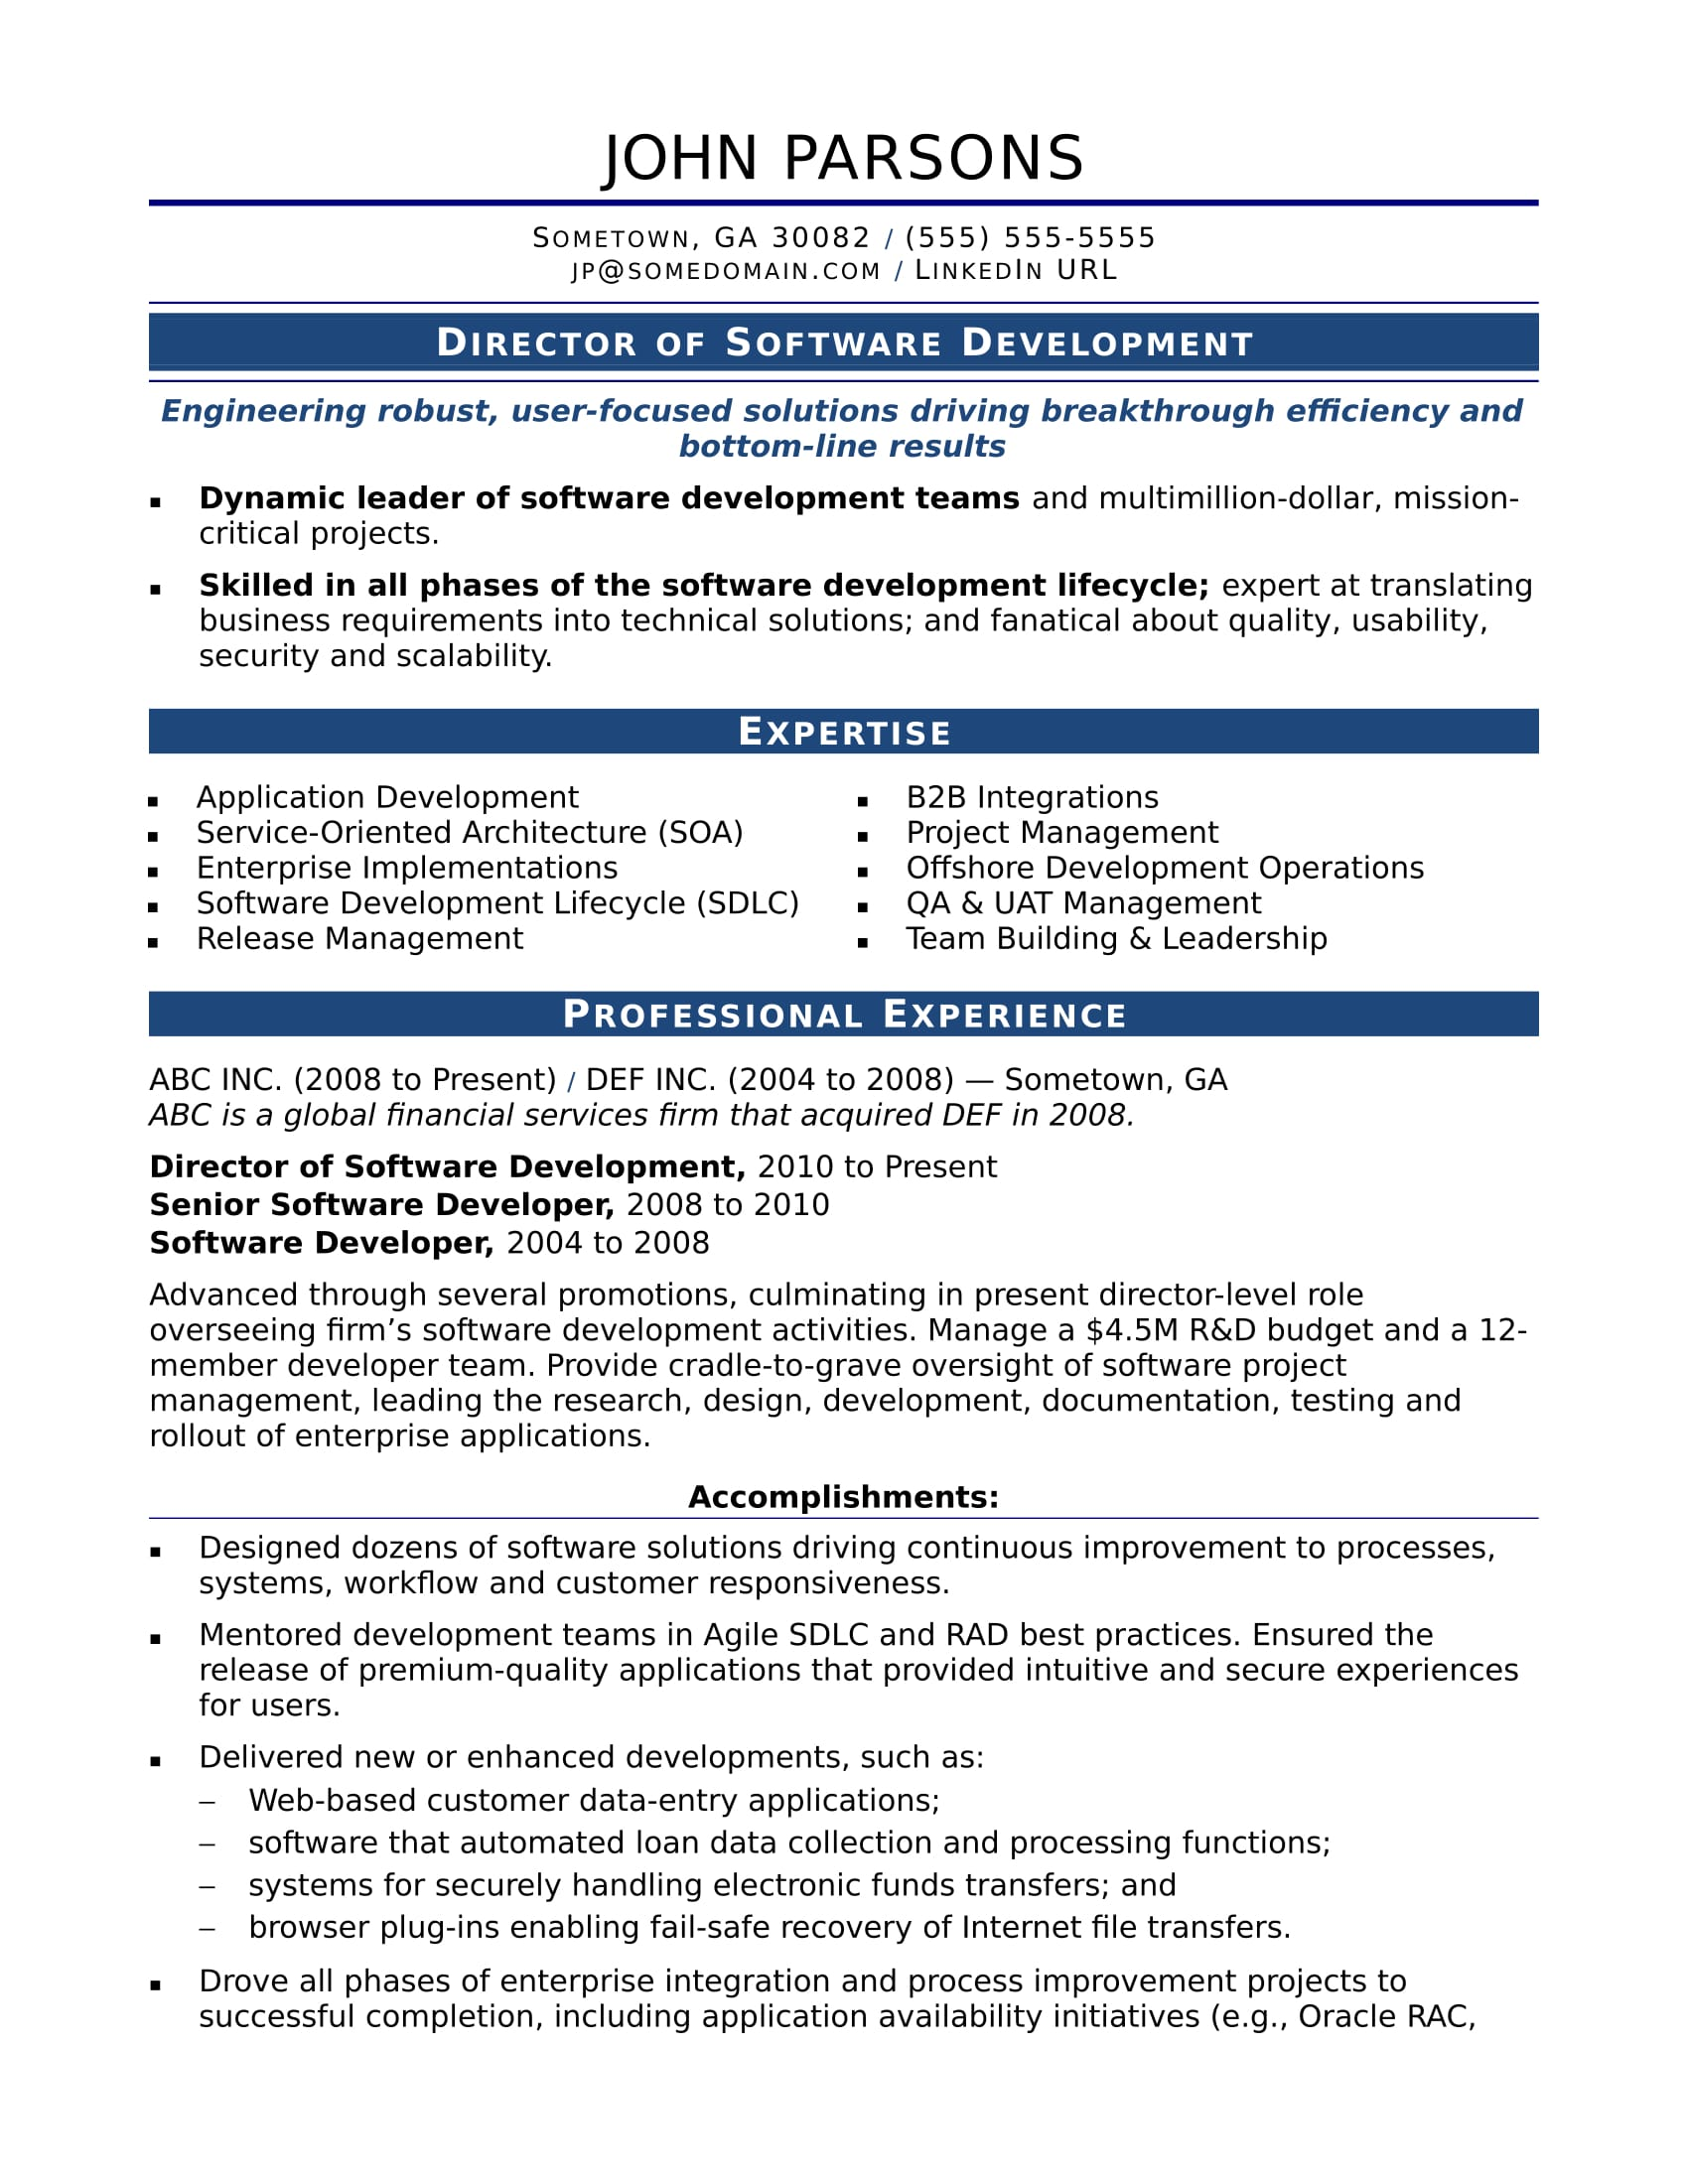 Resume Objective For Experienced